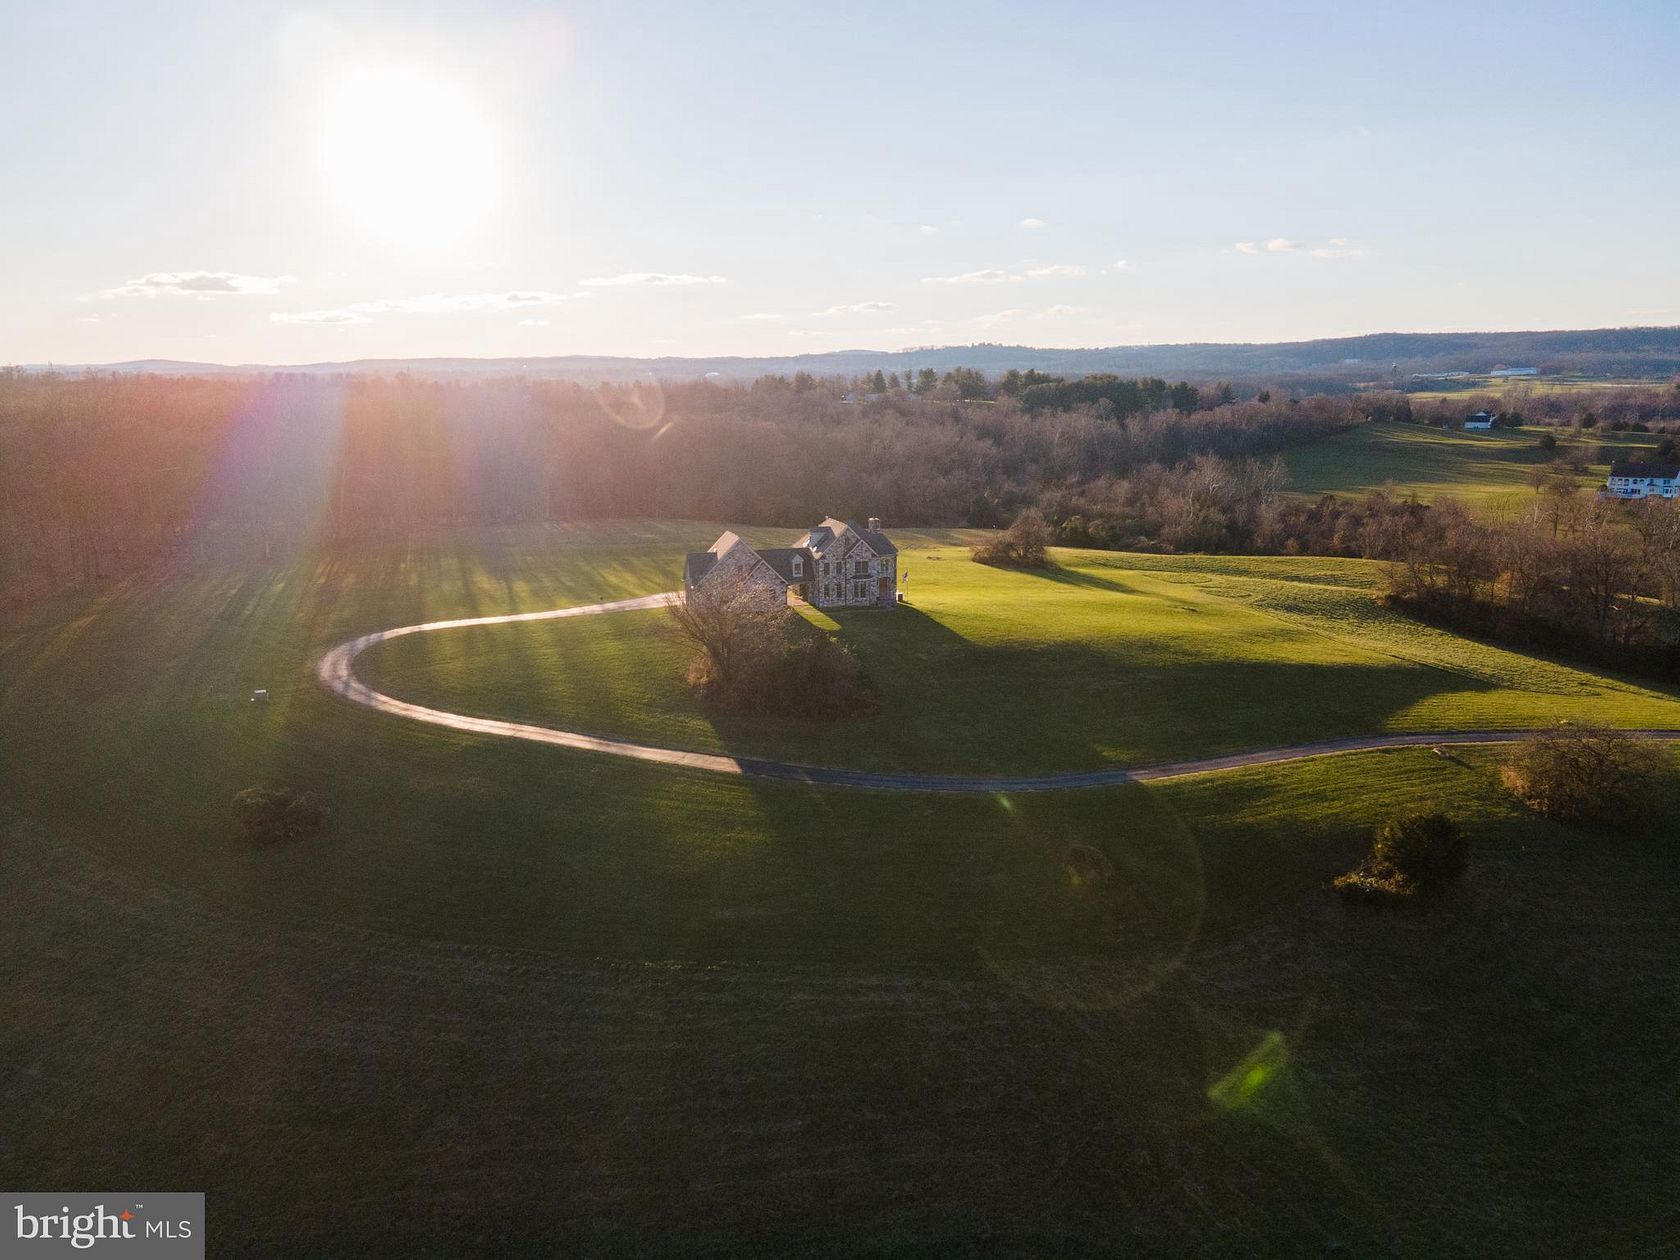 36.7 Acres of Land & Home for Sale in Leesburg, Virginia